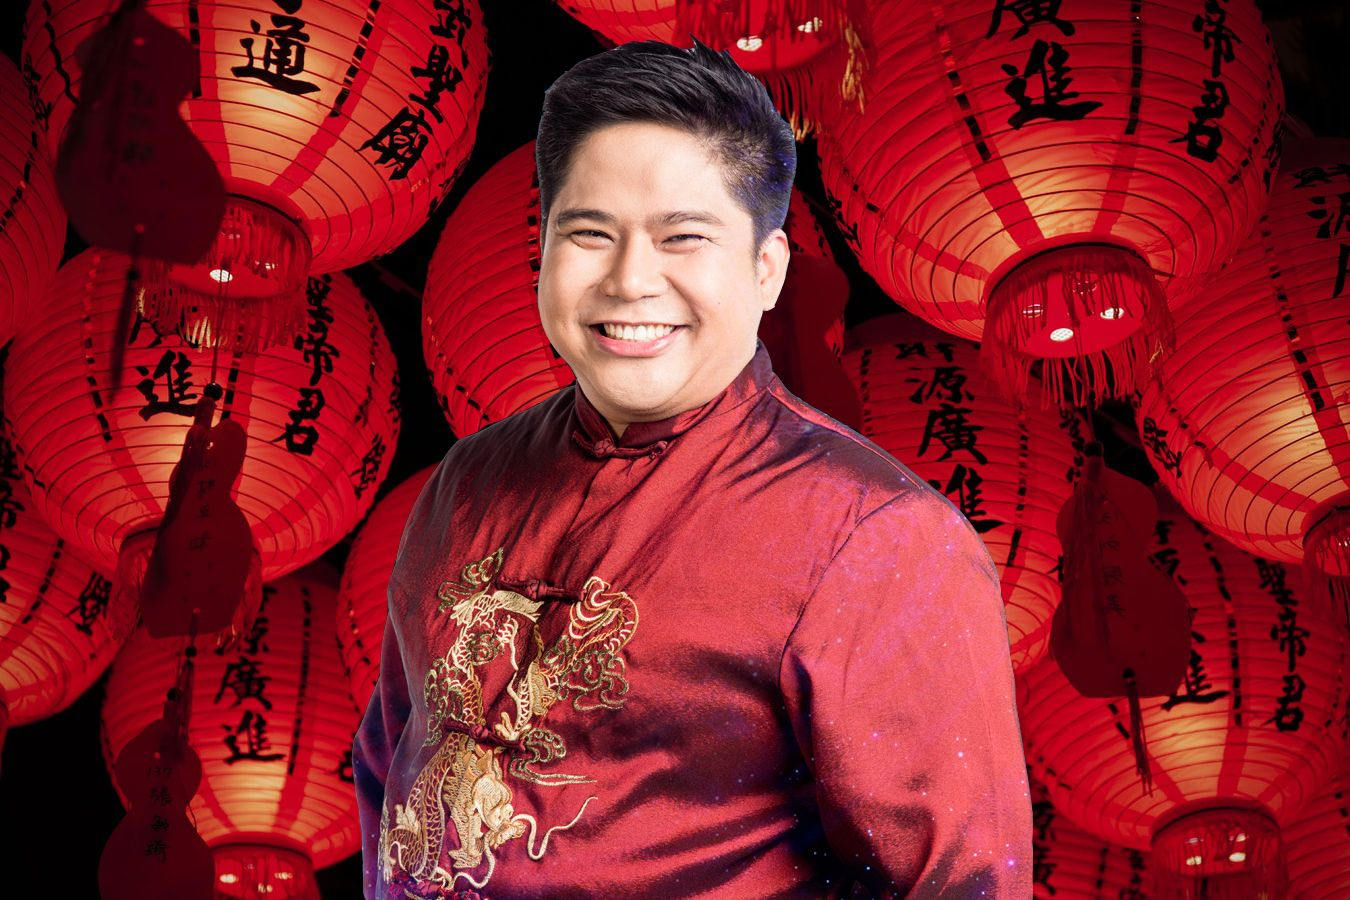 Chinese New Year 2020: Horoscopes For The 12 Zodiac Signs By Feng Shui Master Hanz Cua